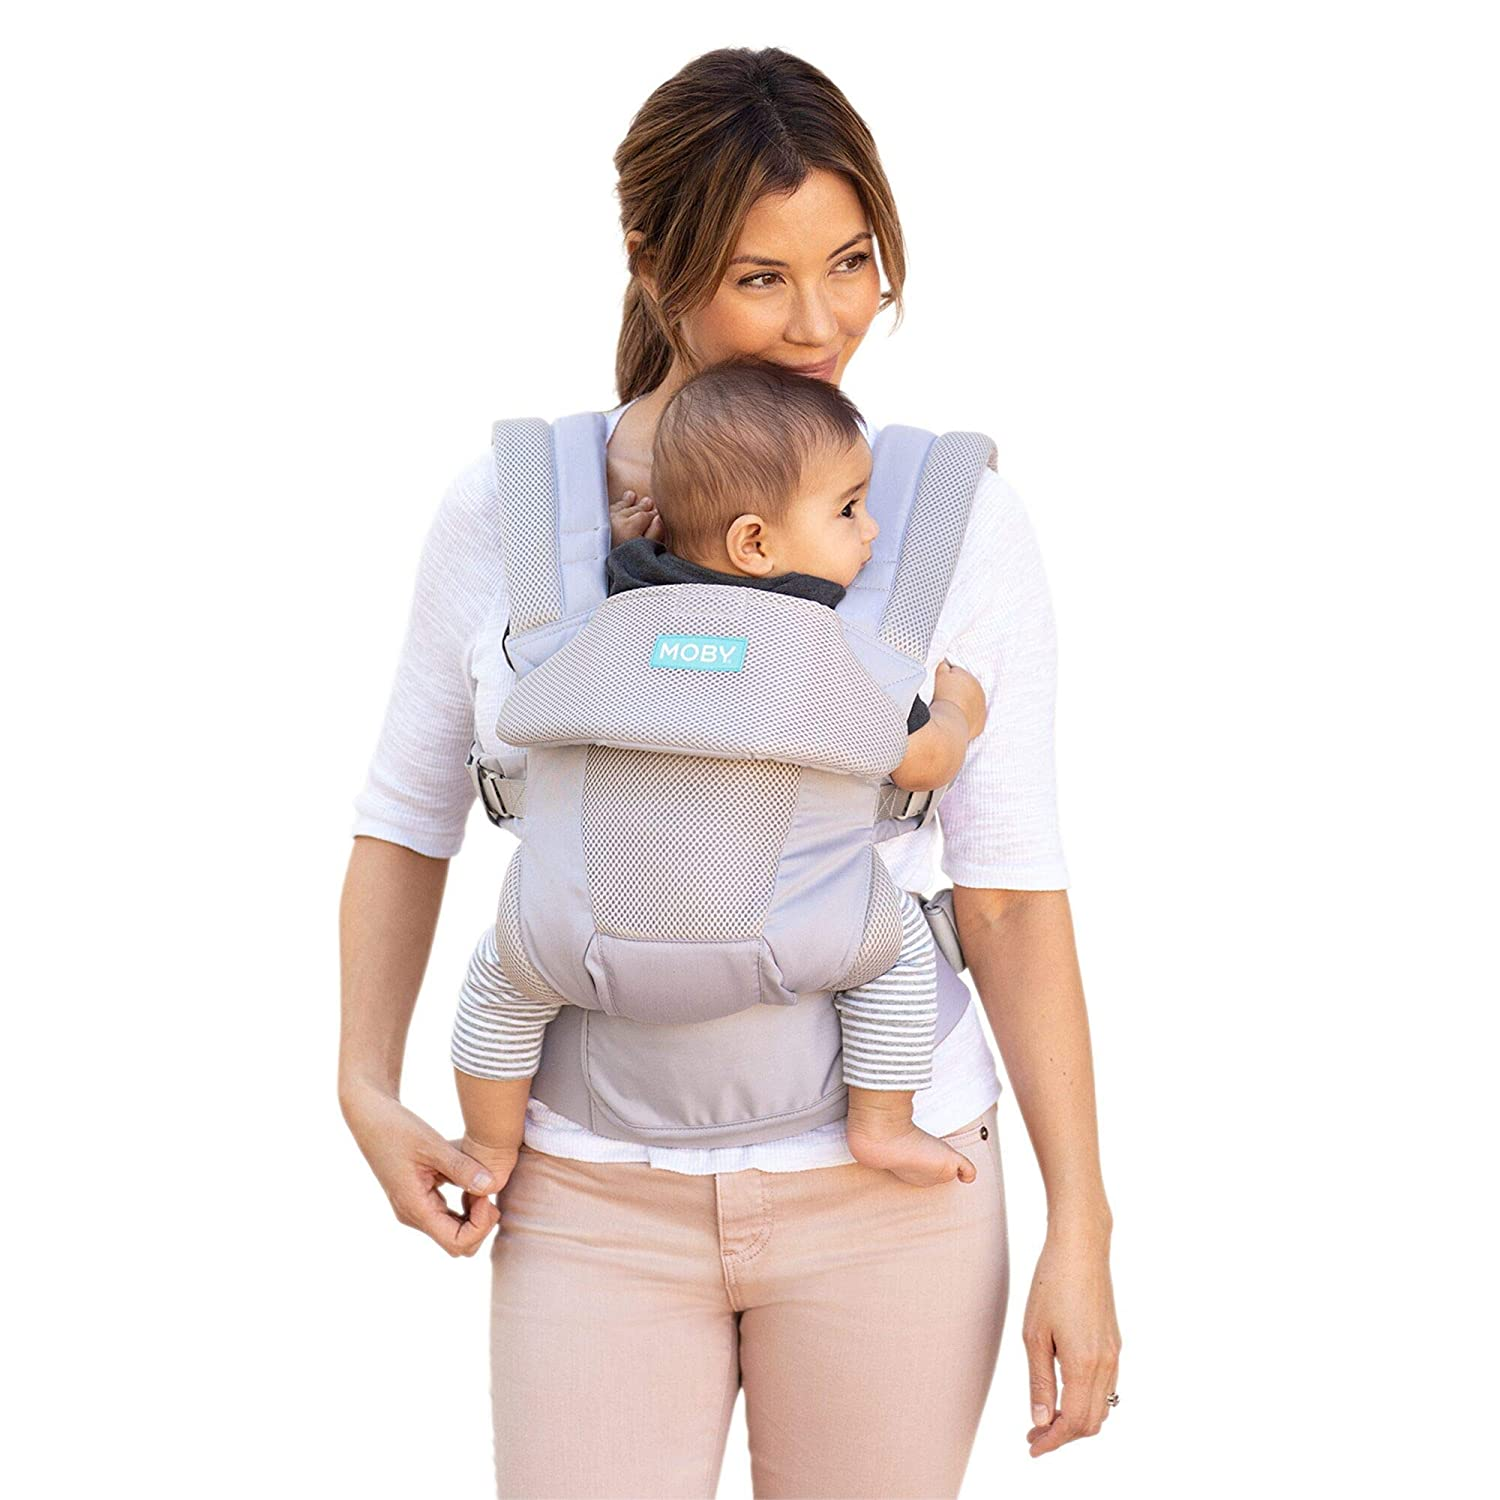 Moby Move | Baby Carrier for Mothers, Fathers, and Caregivers | Designed for Newborns, Infants, and Toddlers | Baby Holder Carrier | Holder Can Support Babies up to 45 lbs | Glacier Grey